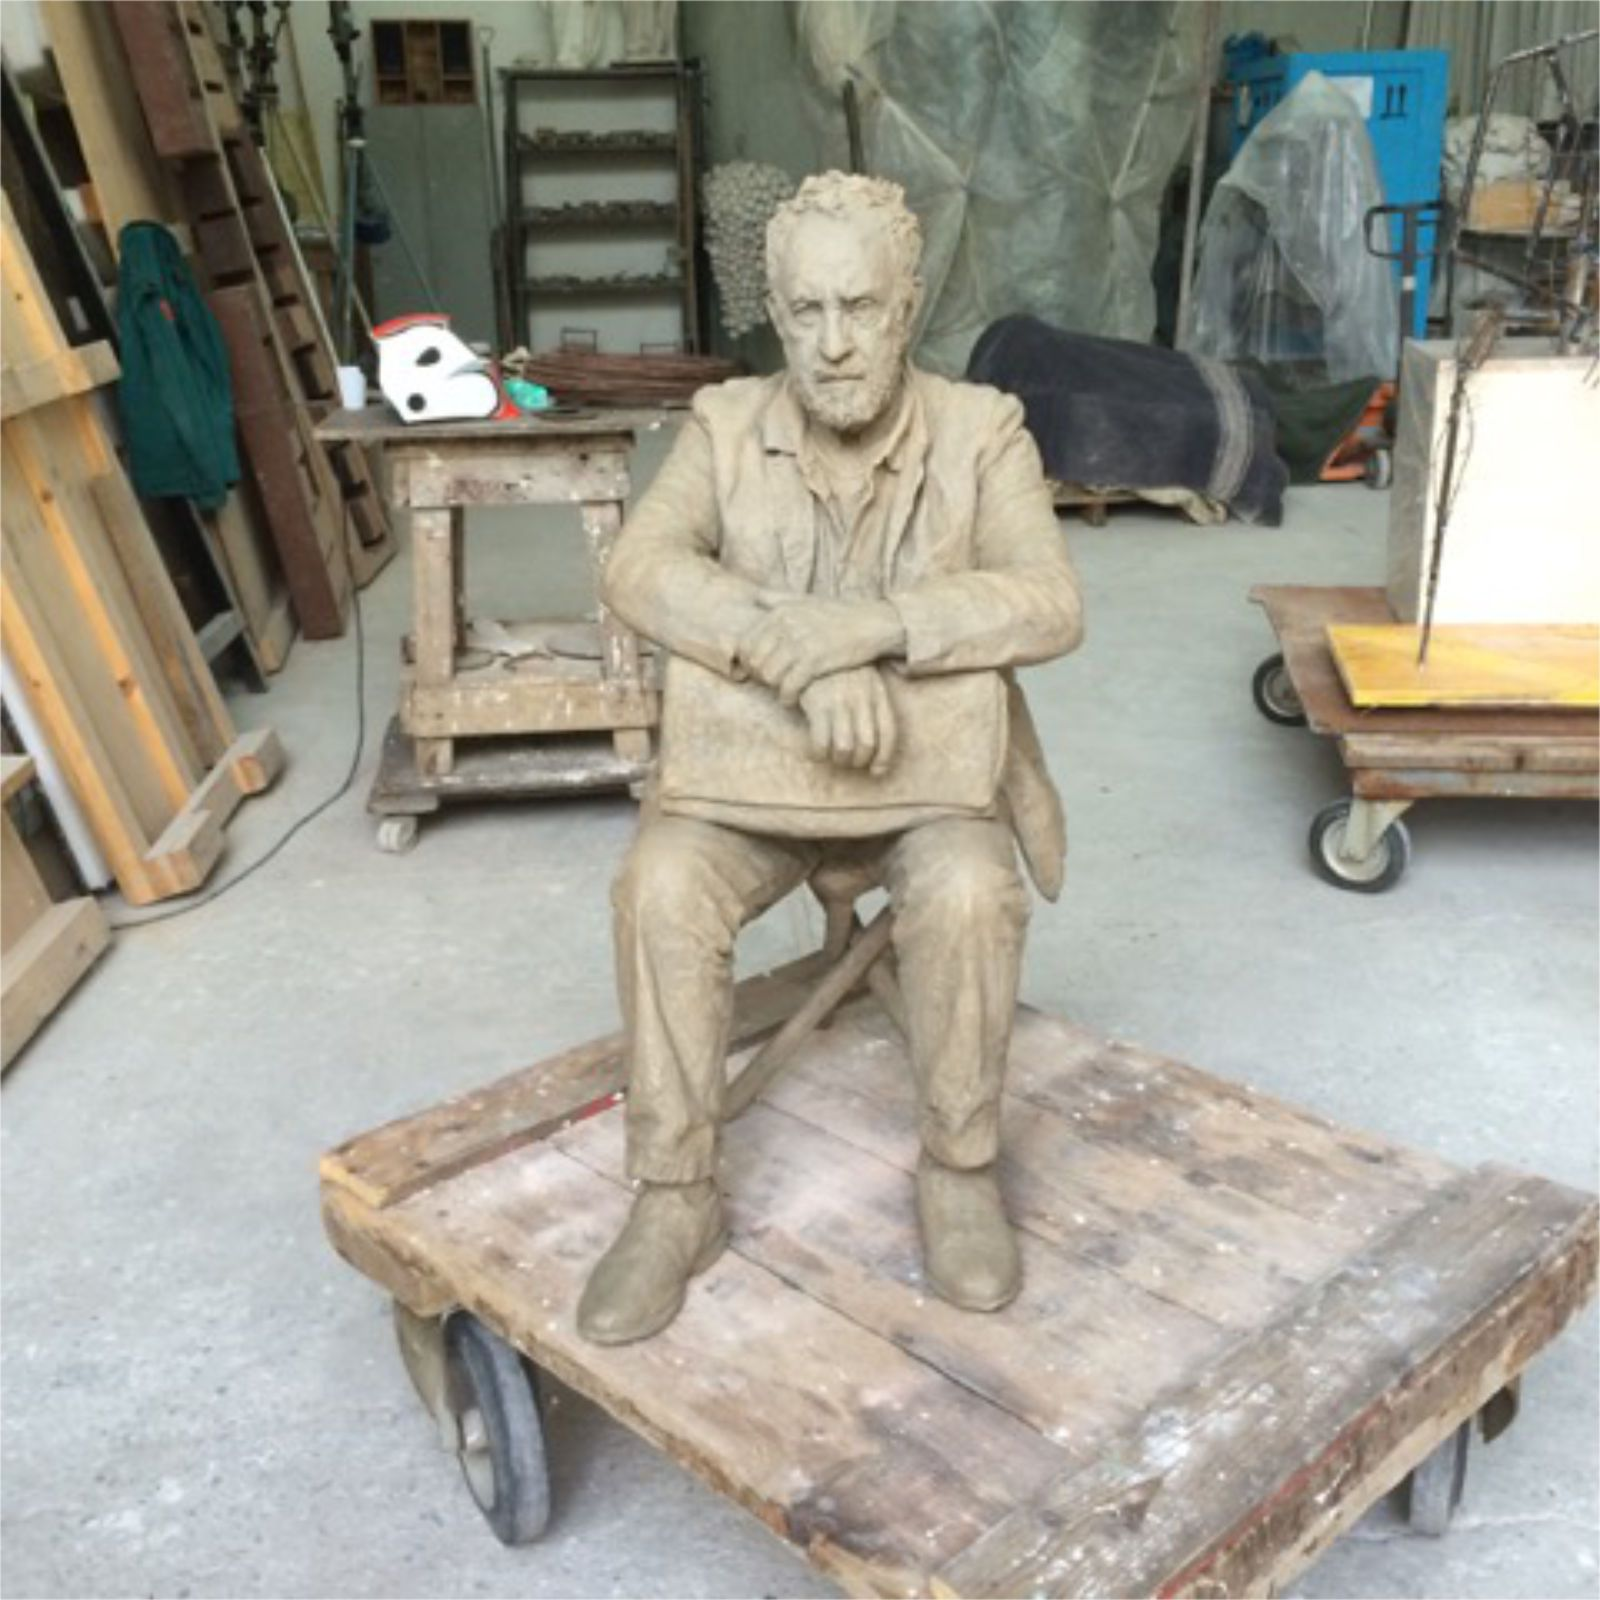 Seated man on a stool, 2016